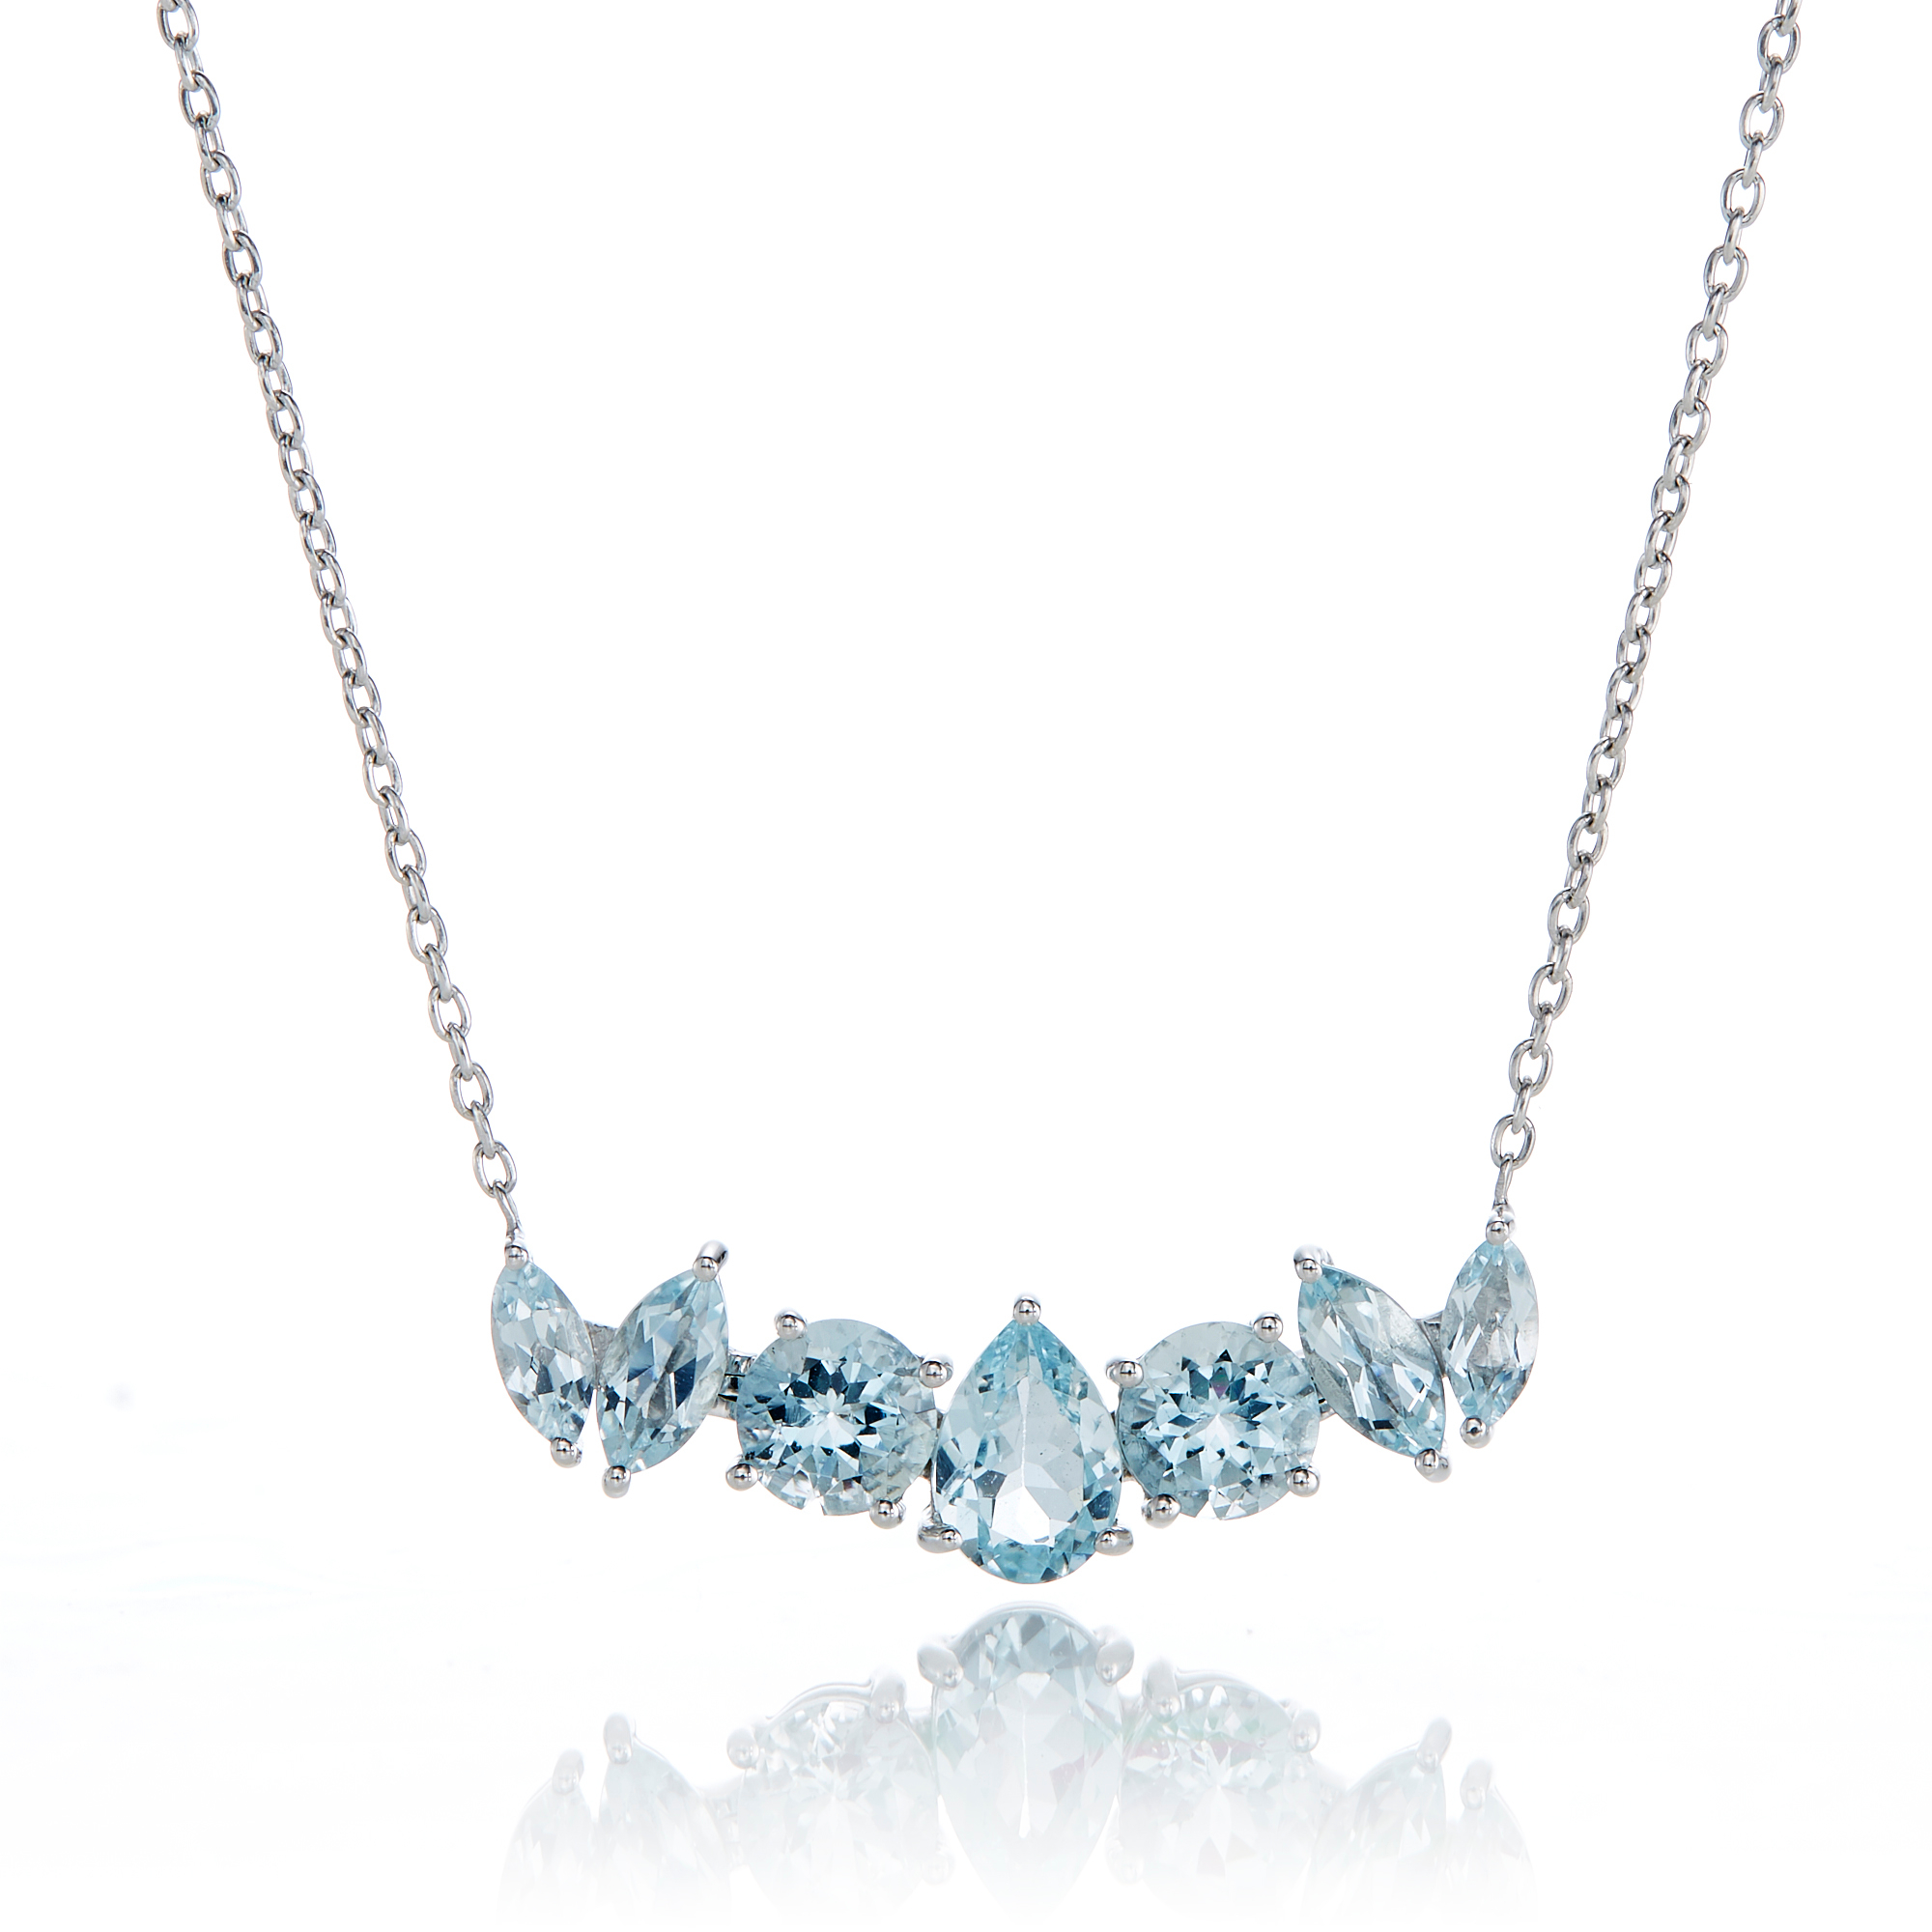 Gump's 7-Stone Aquamarine Pendant Necklace